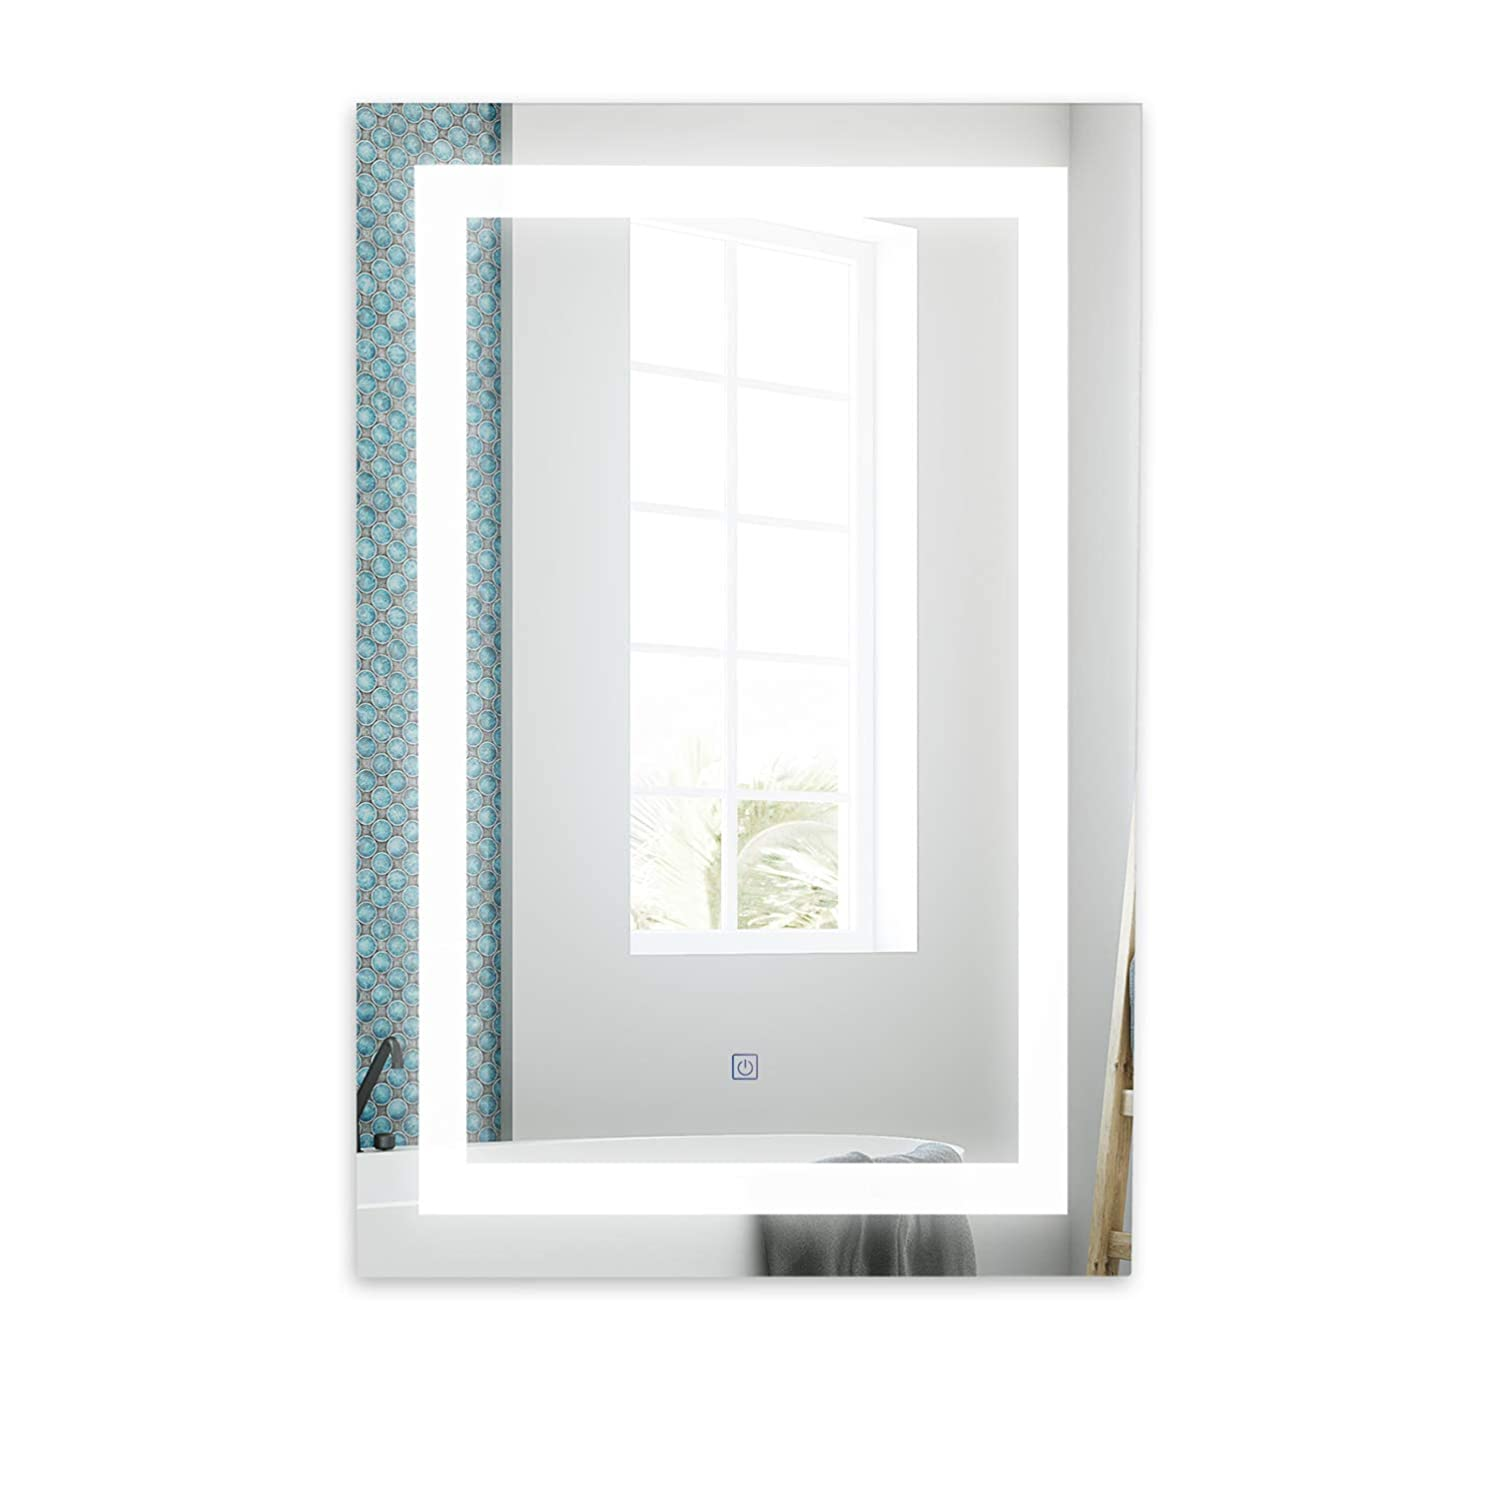 Bathroom LED Mirror 24 36 Inch Wall Mounted Lighted Vanity Mirror 3000-6000K Dimmable Illuminated Backlit Hotel with Anti Fog Pad Touch Sensor Switch, CRI 90, IP44 Waterproof, Vertical or Horizontal